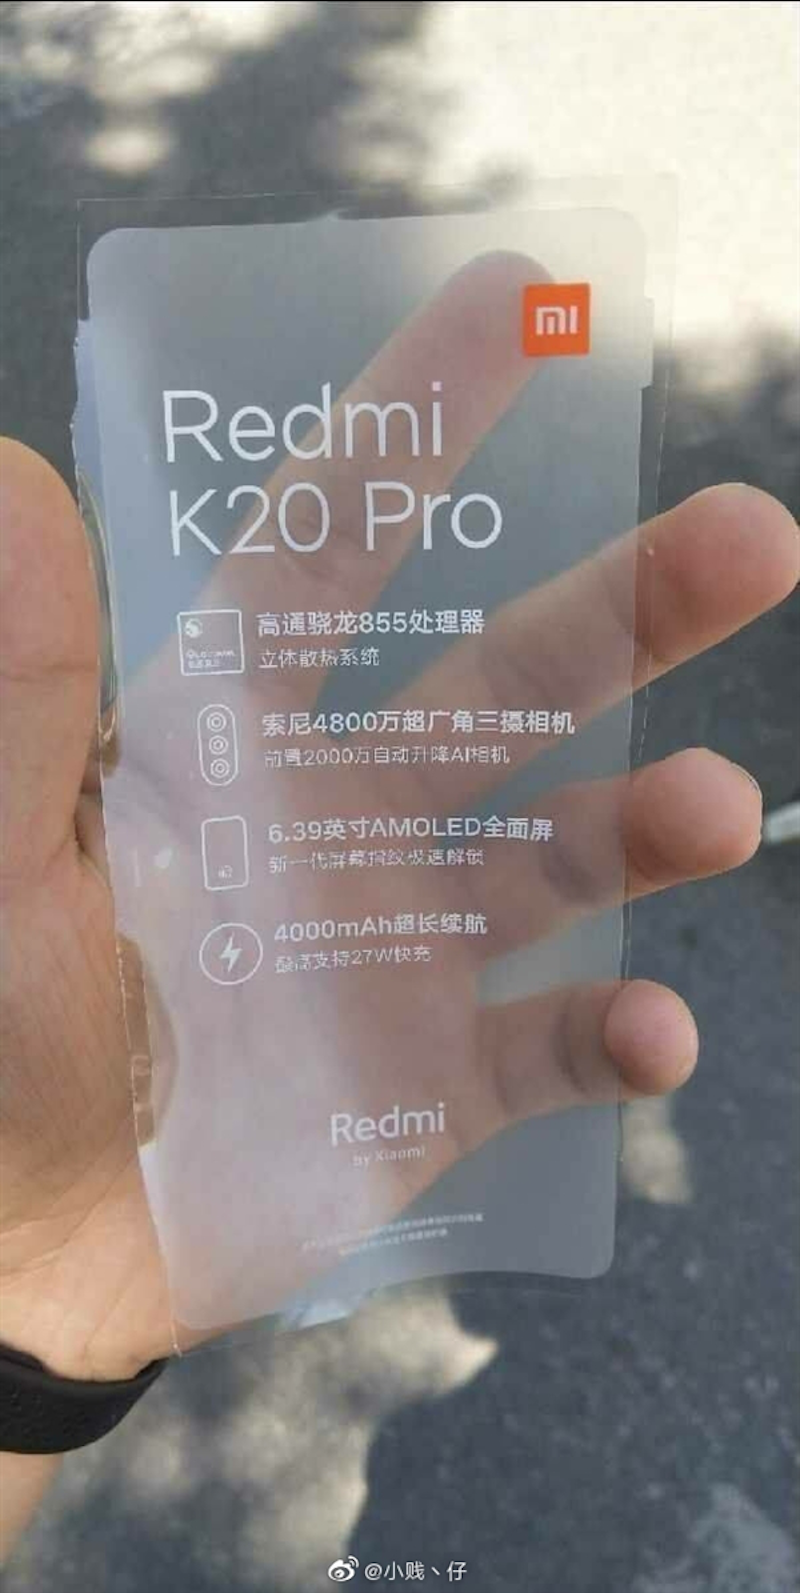 The new Redmi K20 Pro leaked smartphone sticker